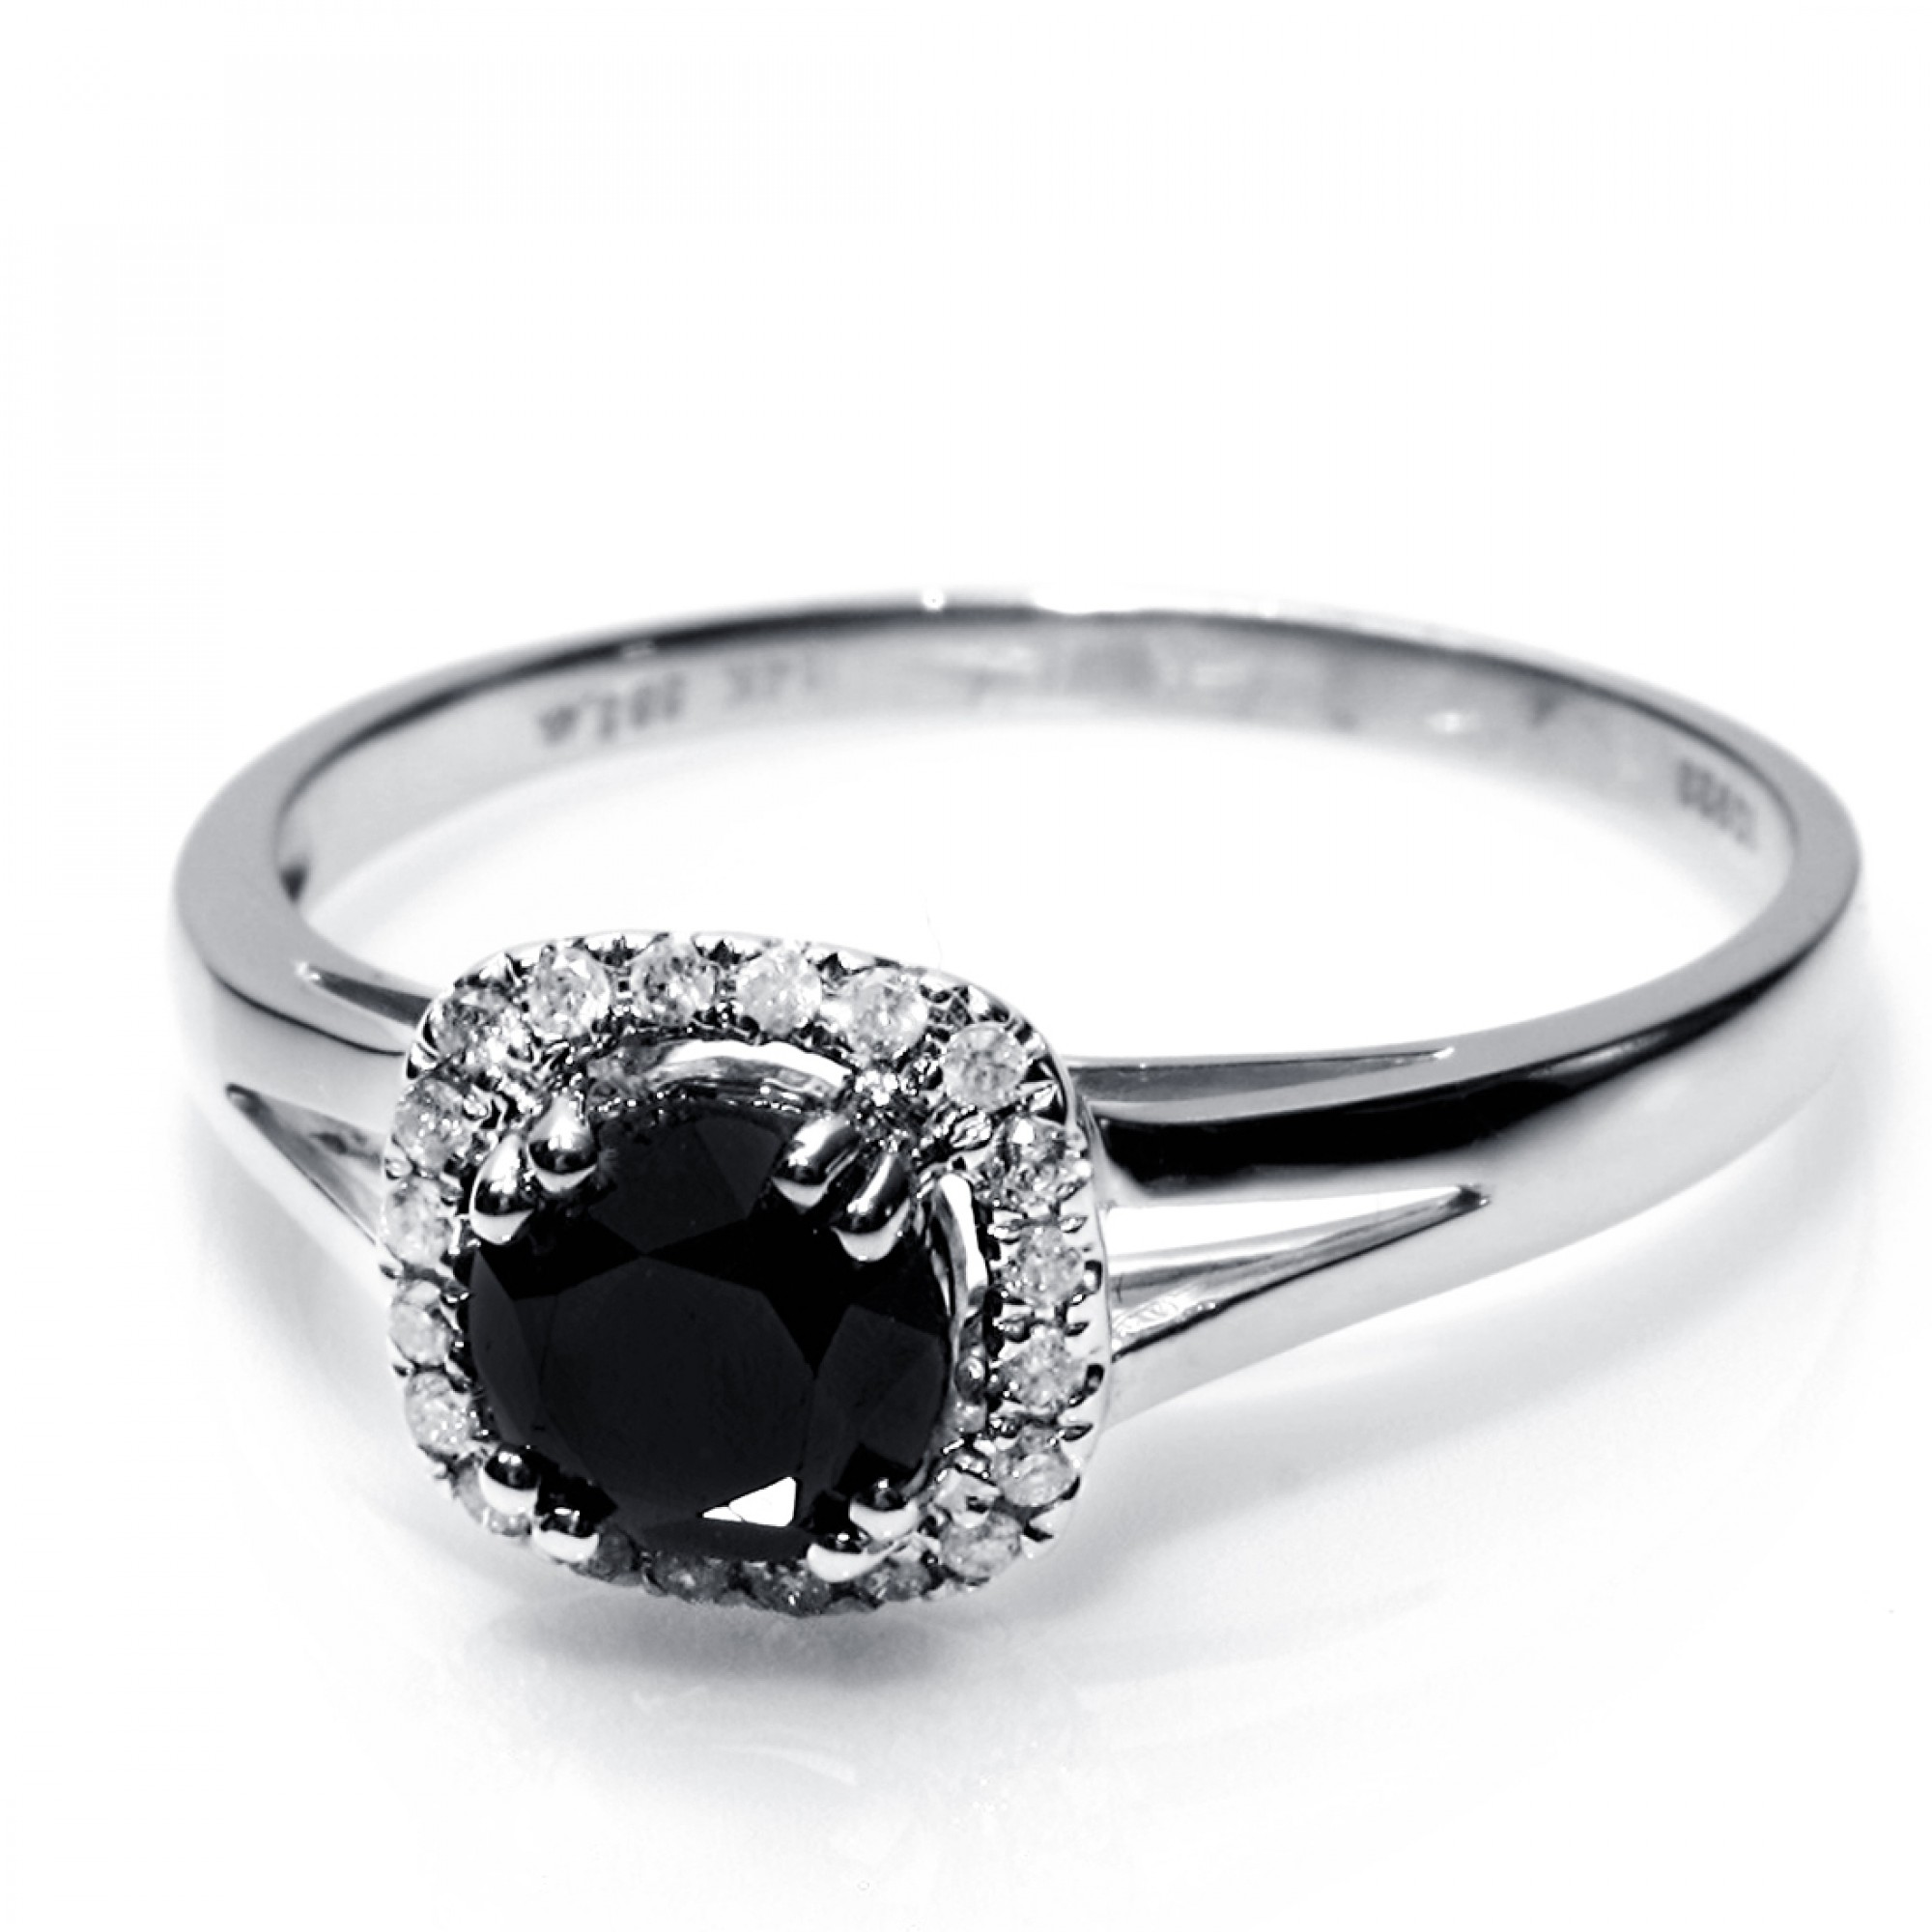 1 01 Cts 14k White Gold Black Diamond Ring Cheap Diamond Engagement Rings Buy Cheap Diamond Jewelry Diamond Engagement Rings Buy Engaged Rings Online Fine Jewelry Best Rings Engaged Ring Diamonds Forever Diamonds For You